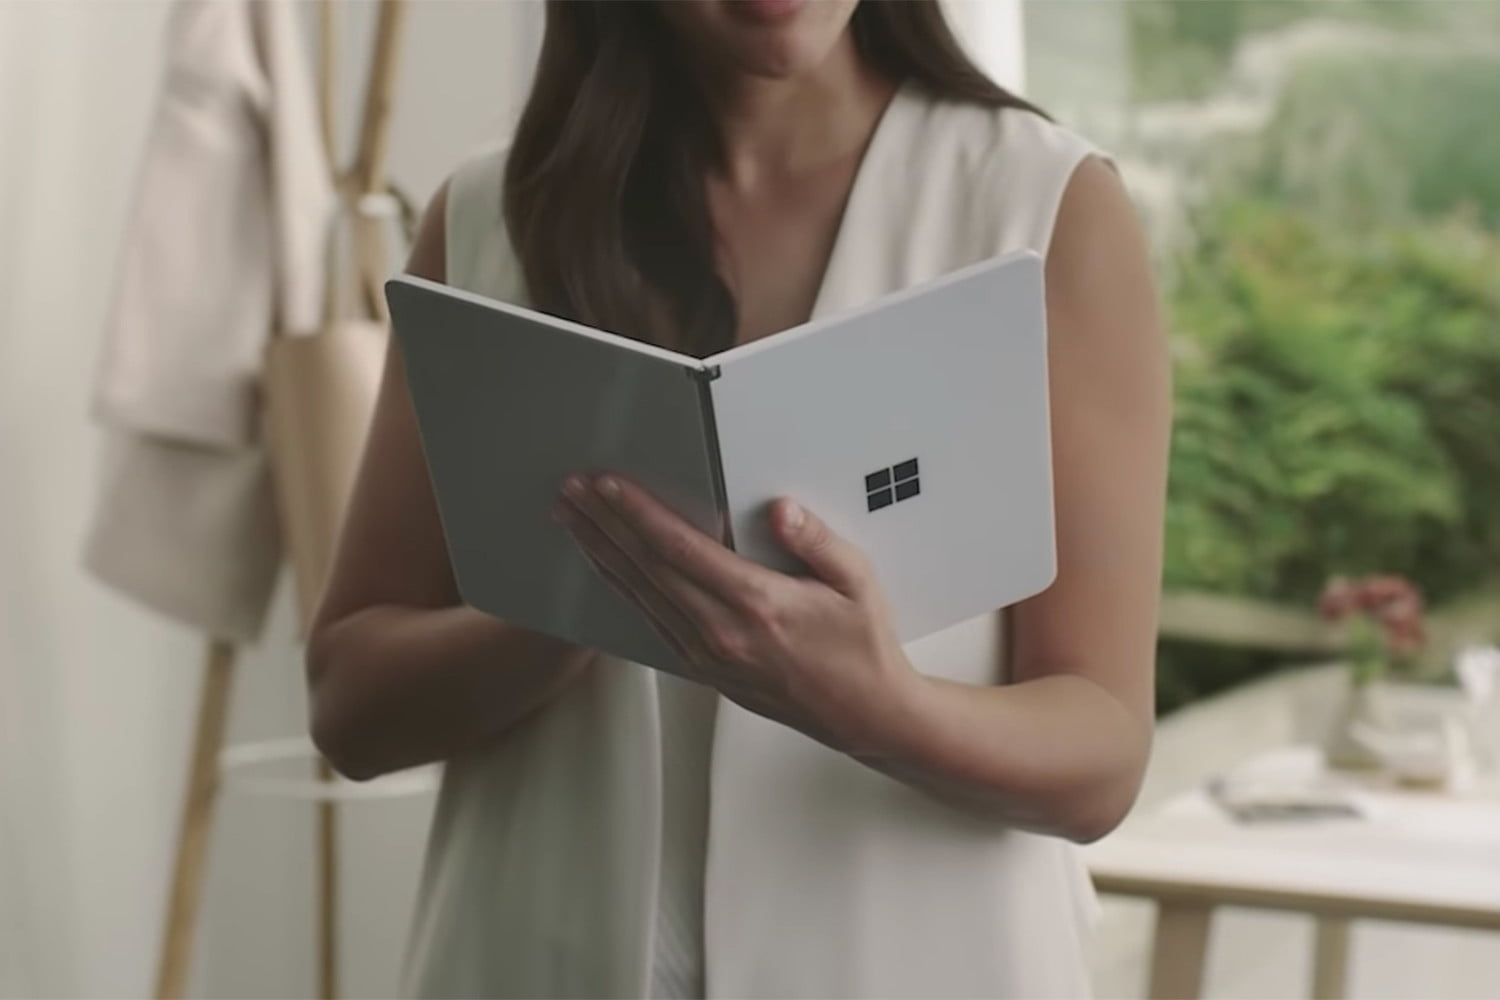 Surface Neo: Everything to know about Microsoft's dual-screen device